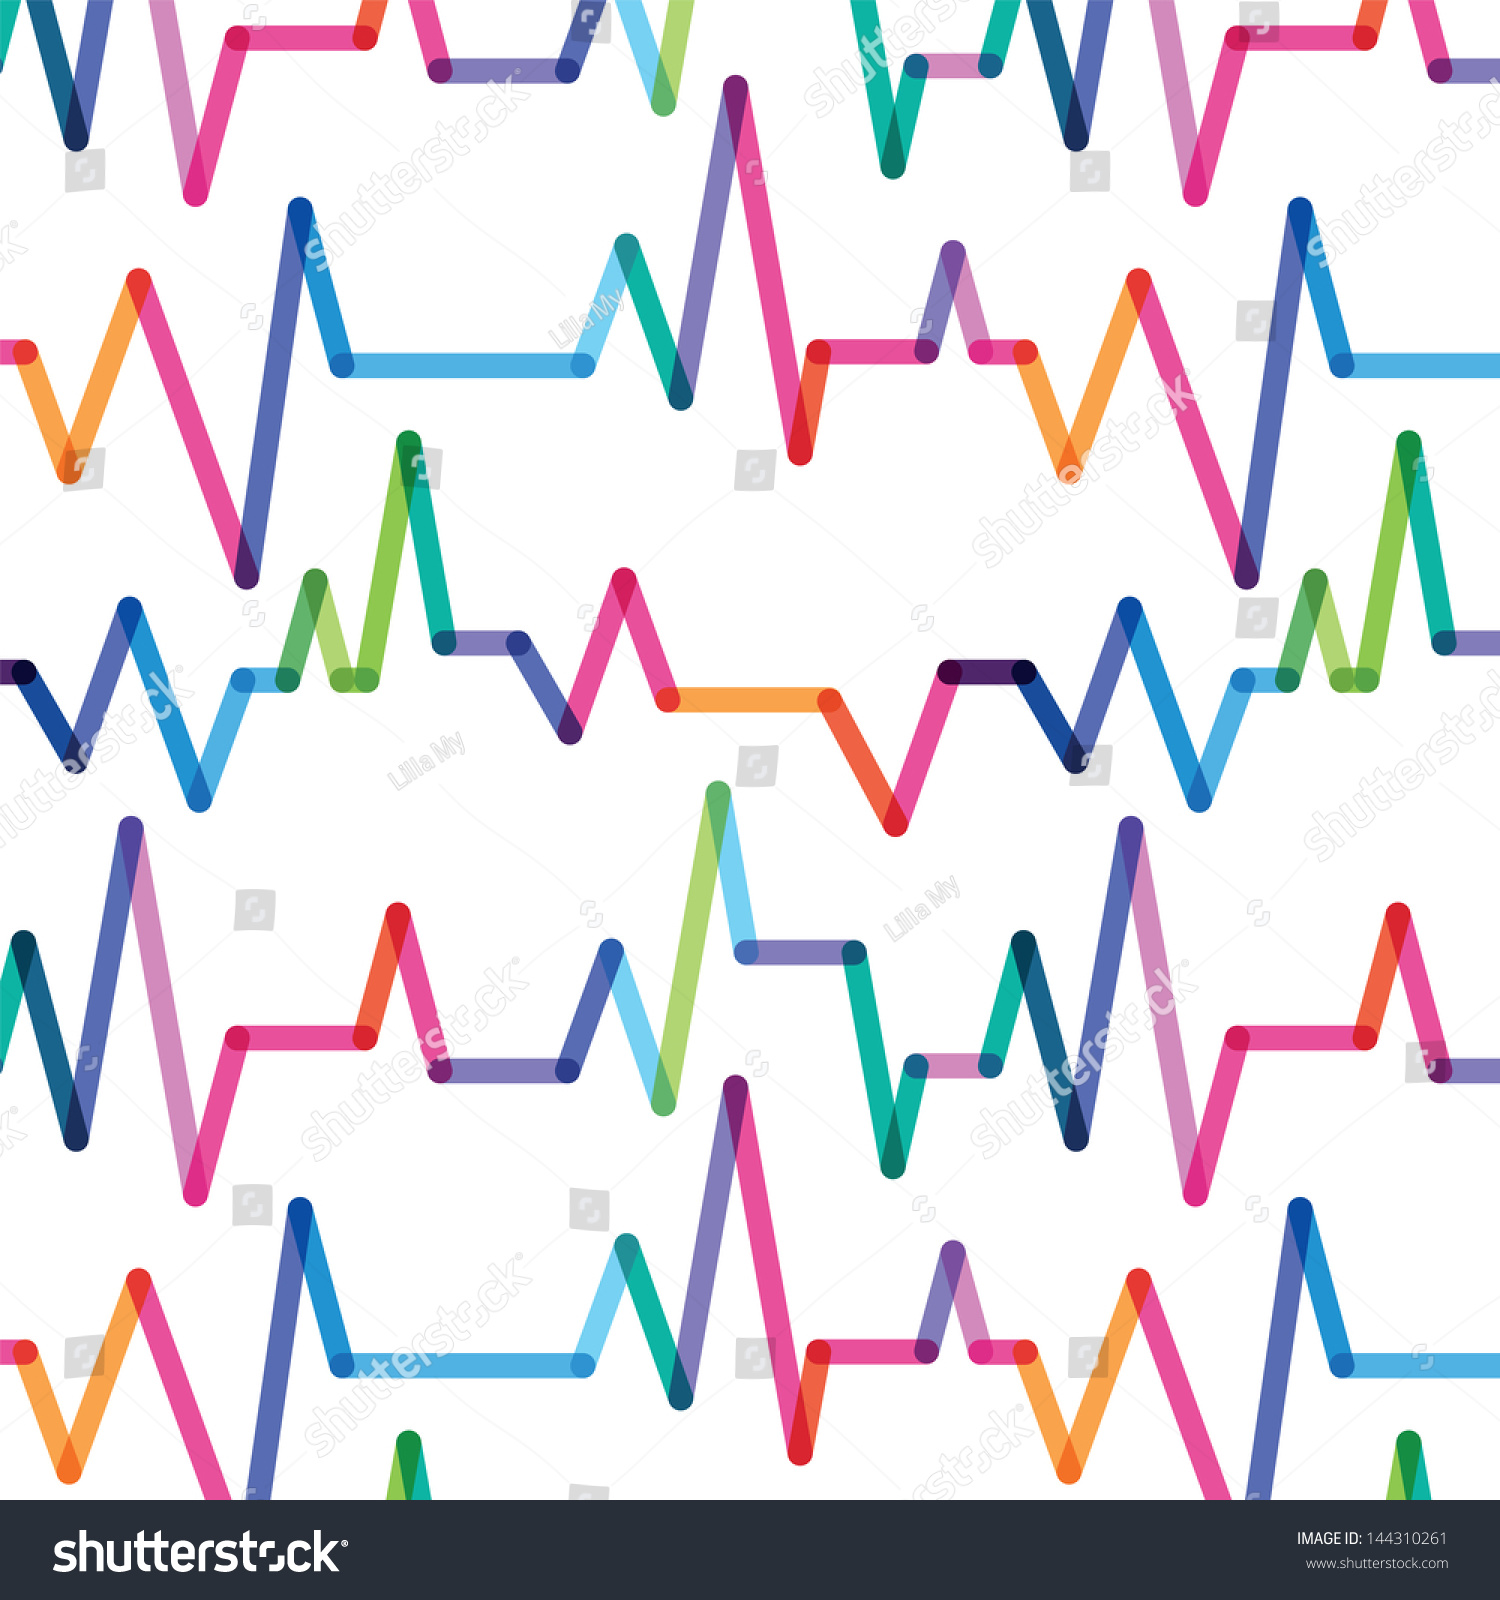 Image result for rhythm pattern